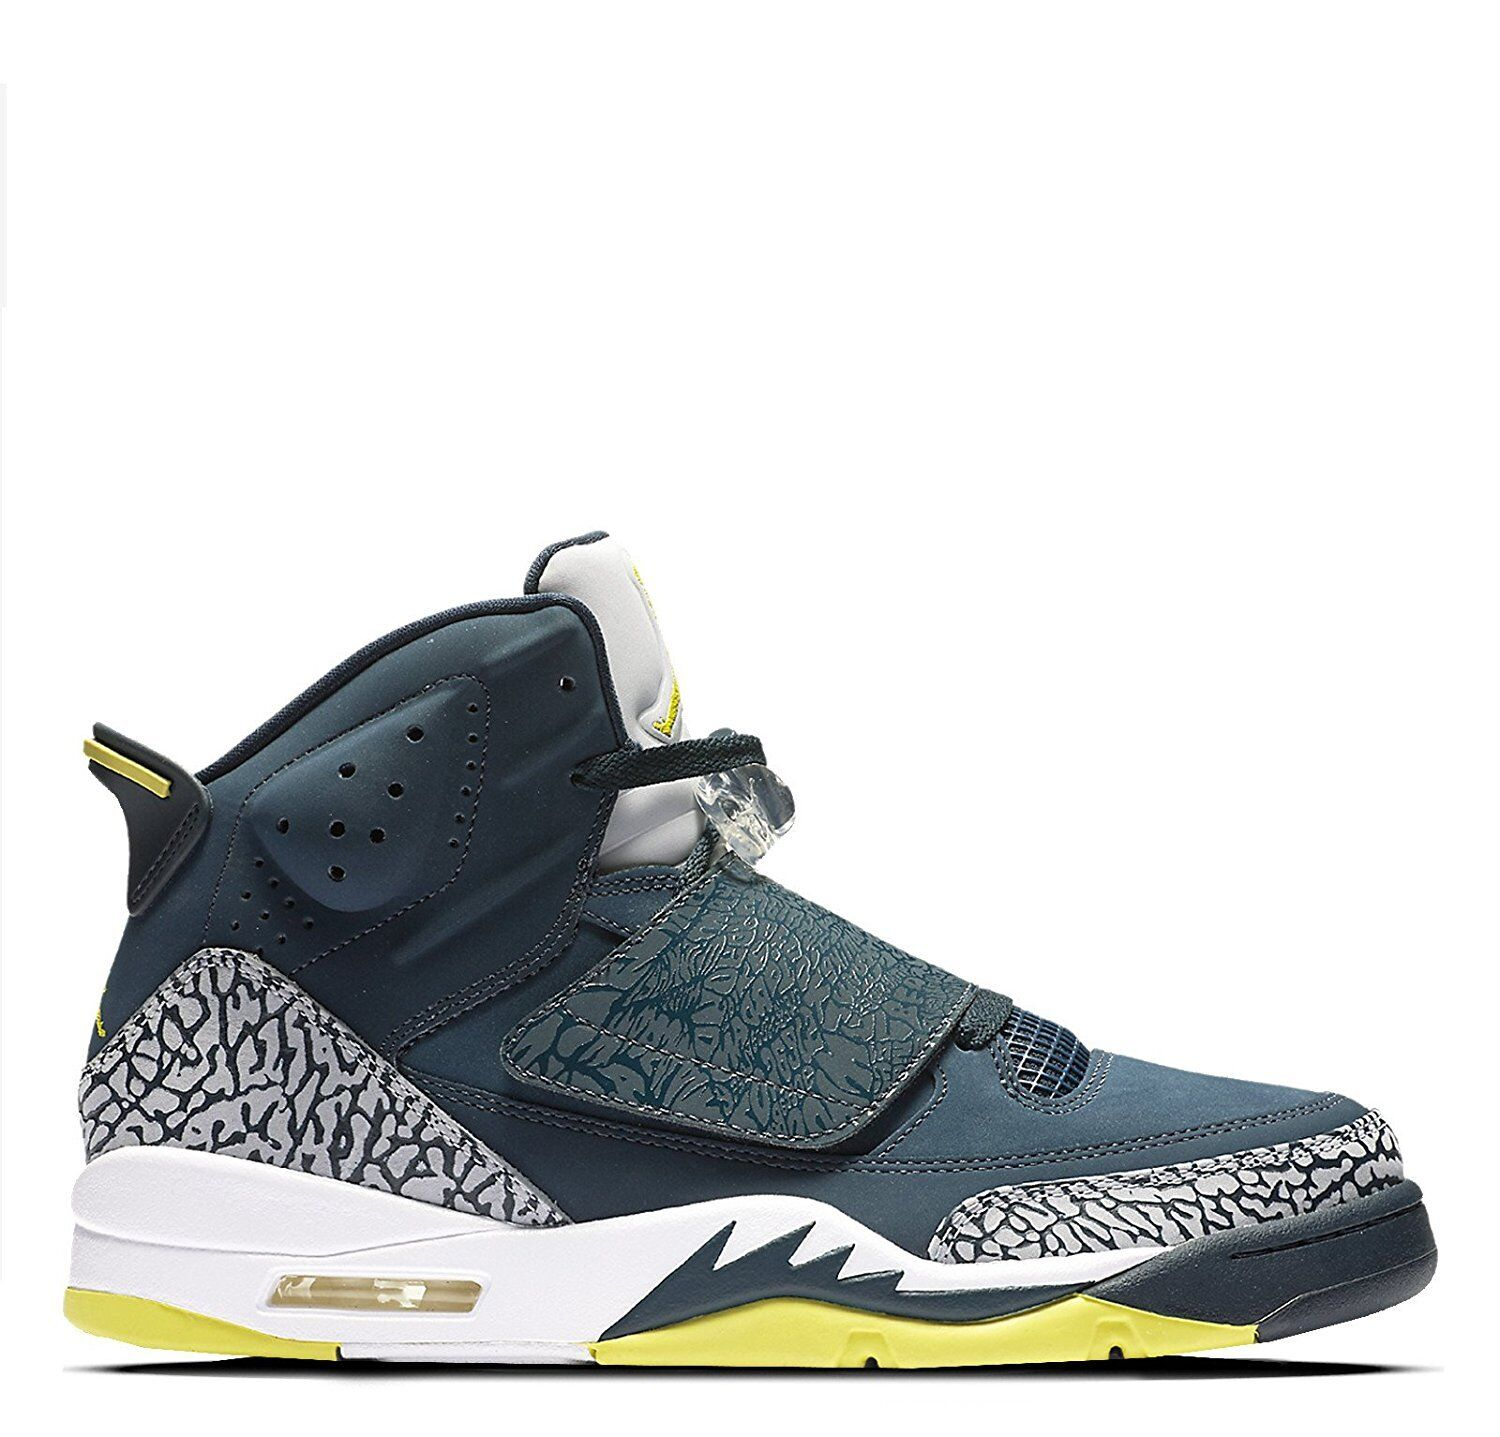 newest 1d8e6 5f277 ... amazon mens air jordan son of mars armory navy white wolf grey  electrolime fe4ef dc718 ...